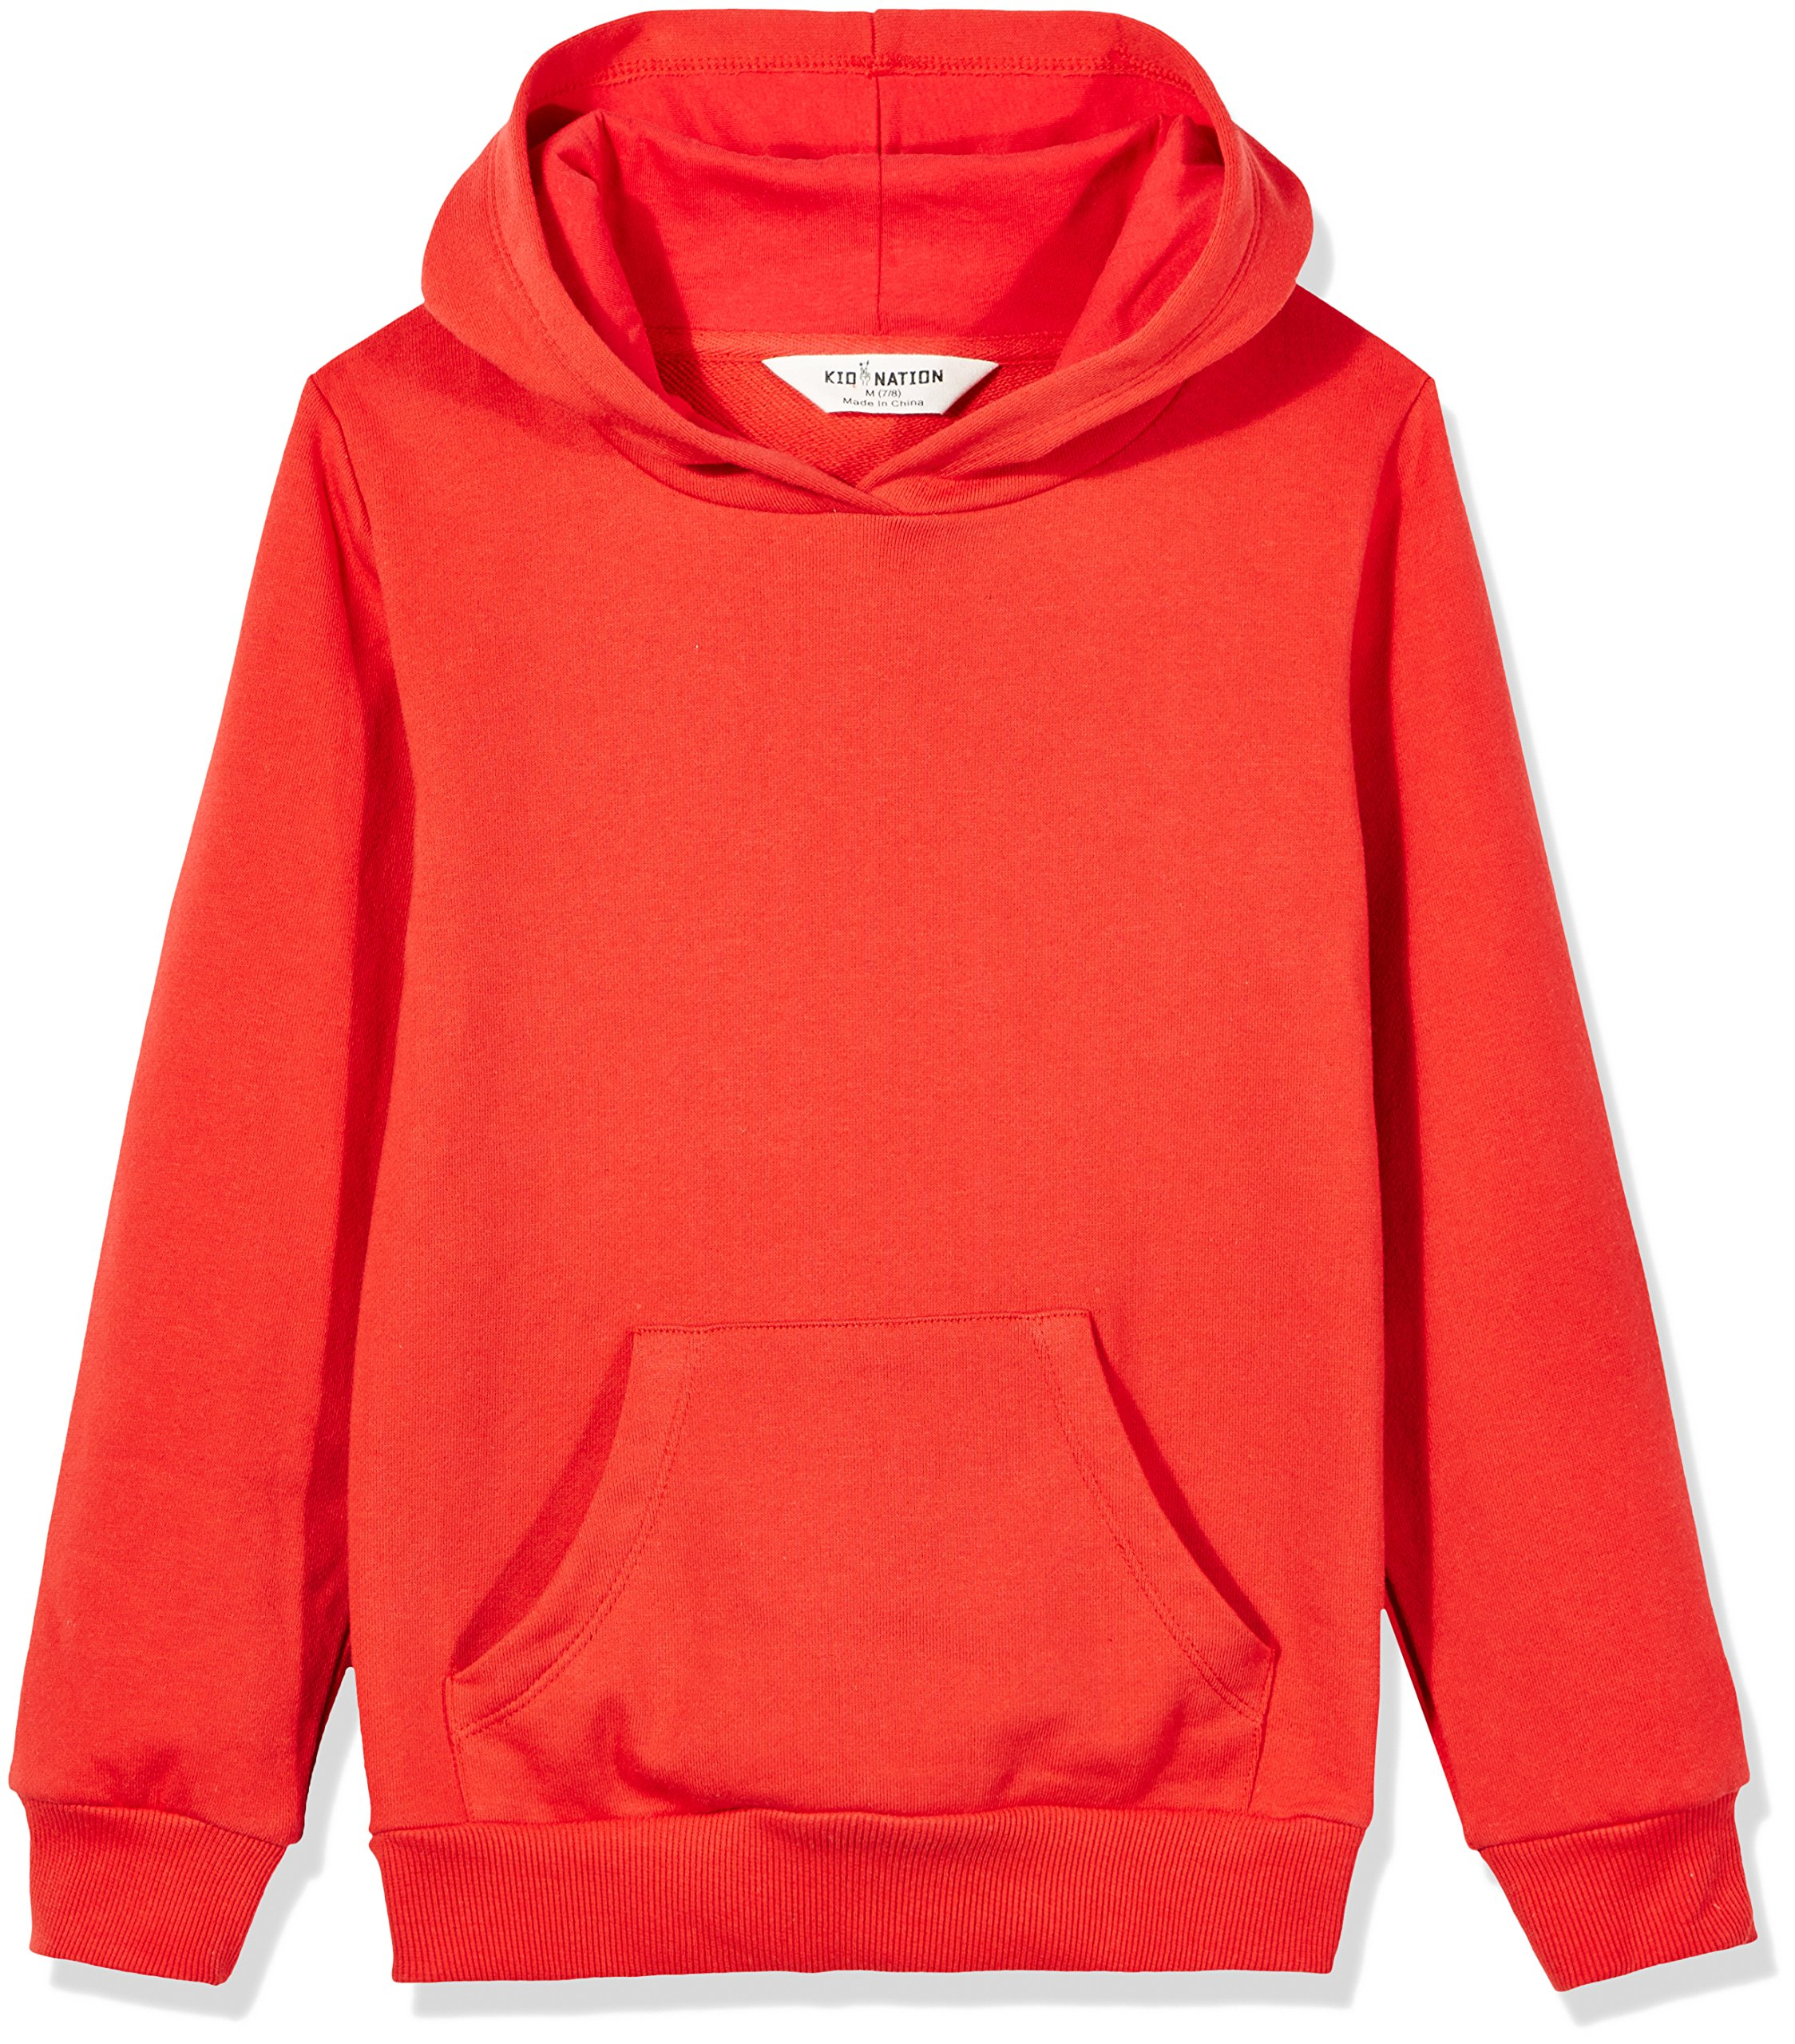 Kid Nation Kids' French Terry Oversized Solid Hoodie Sweatshirt for Boys Or Girls XL Red